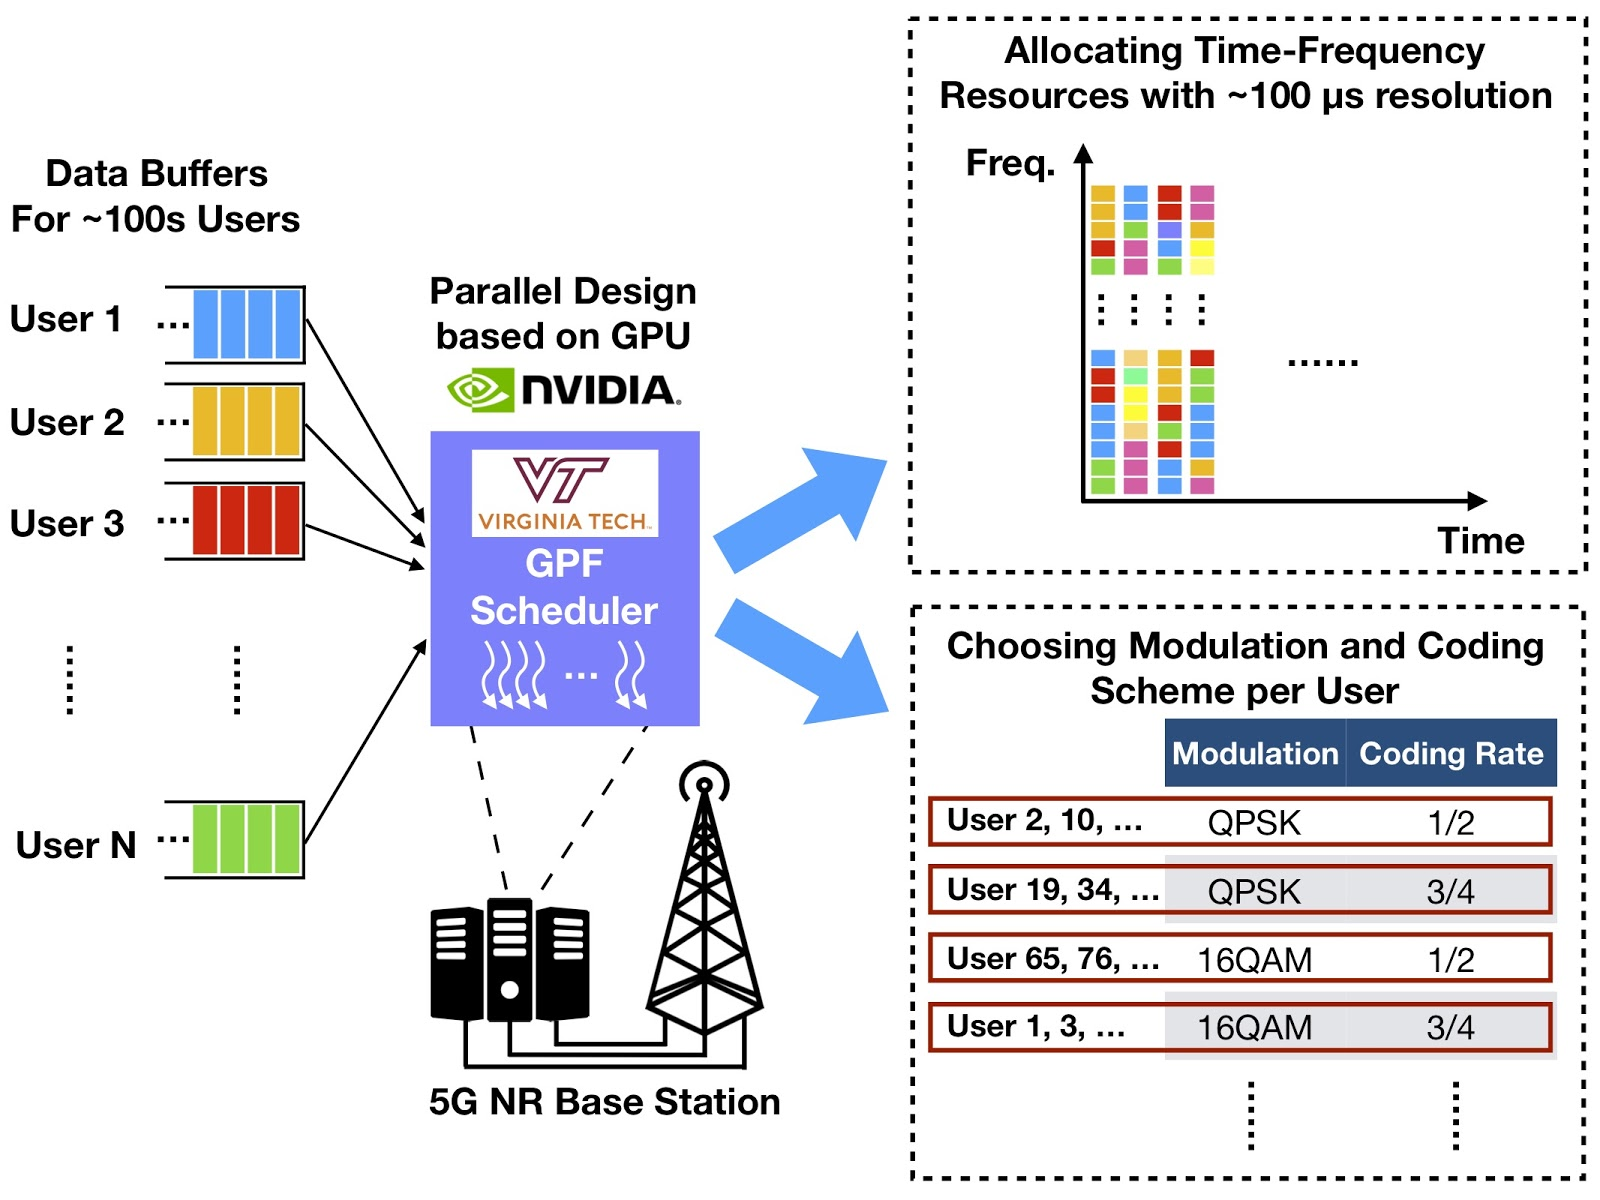 GPU-Based Design to Achieve 100µs Scheduling for 5G NR